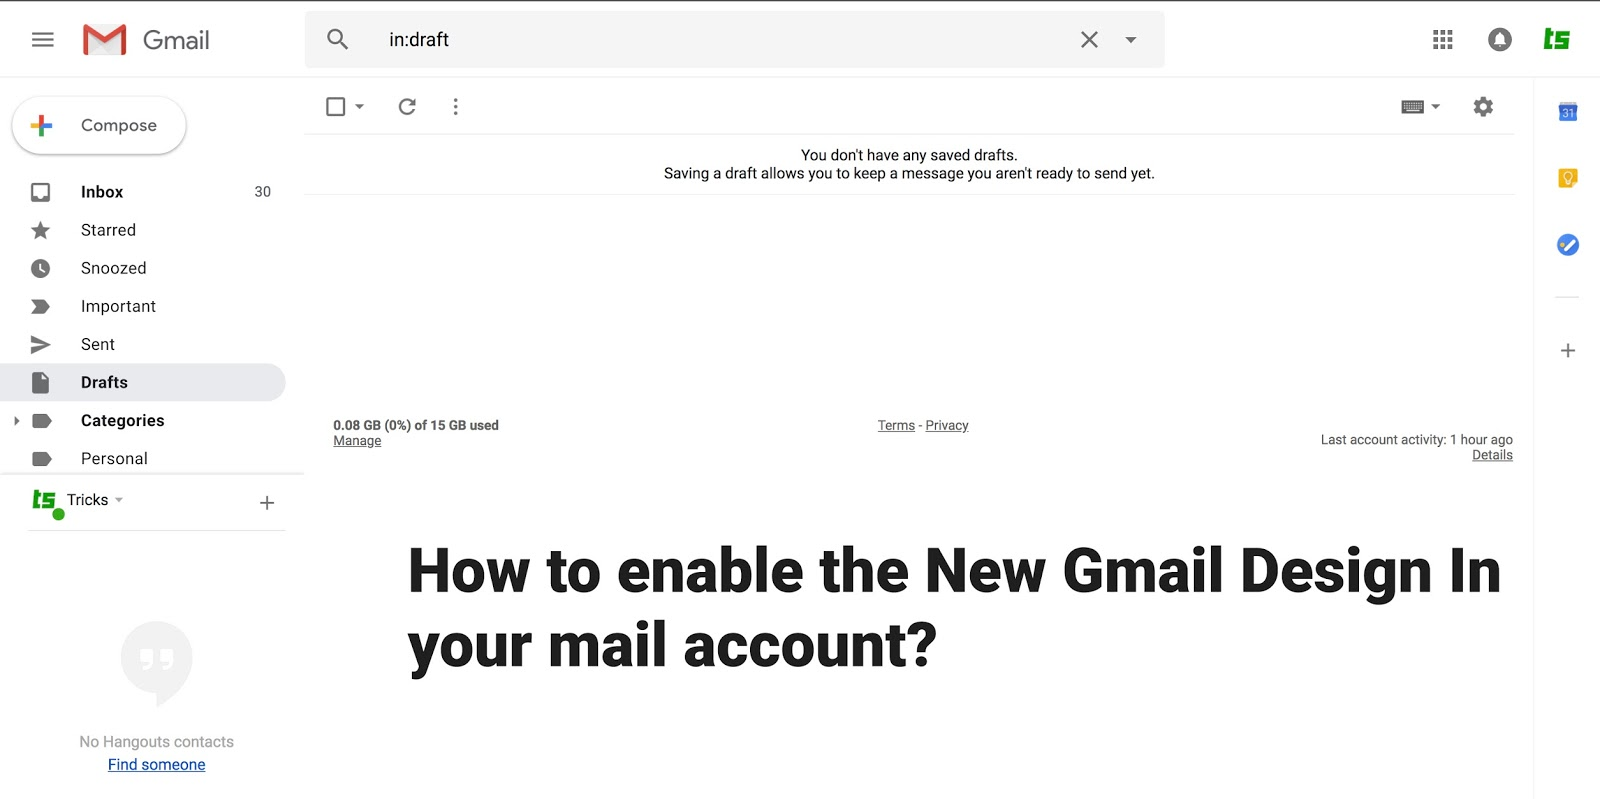 How to enable the New Gmail Design In your mail account?